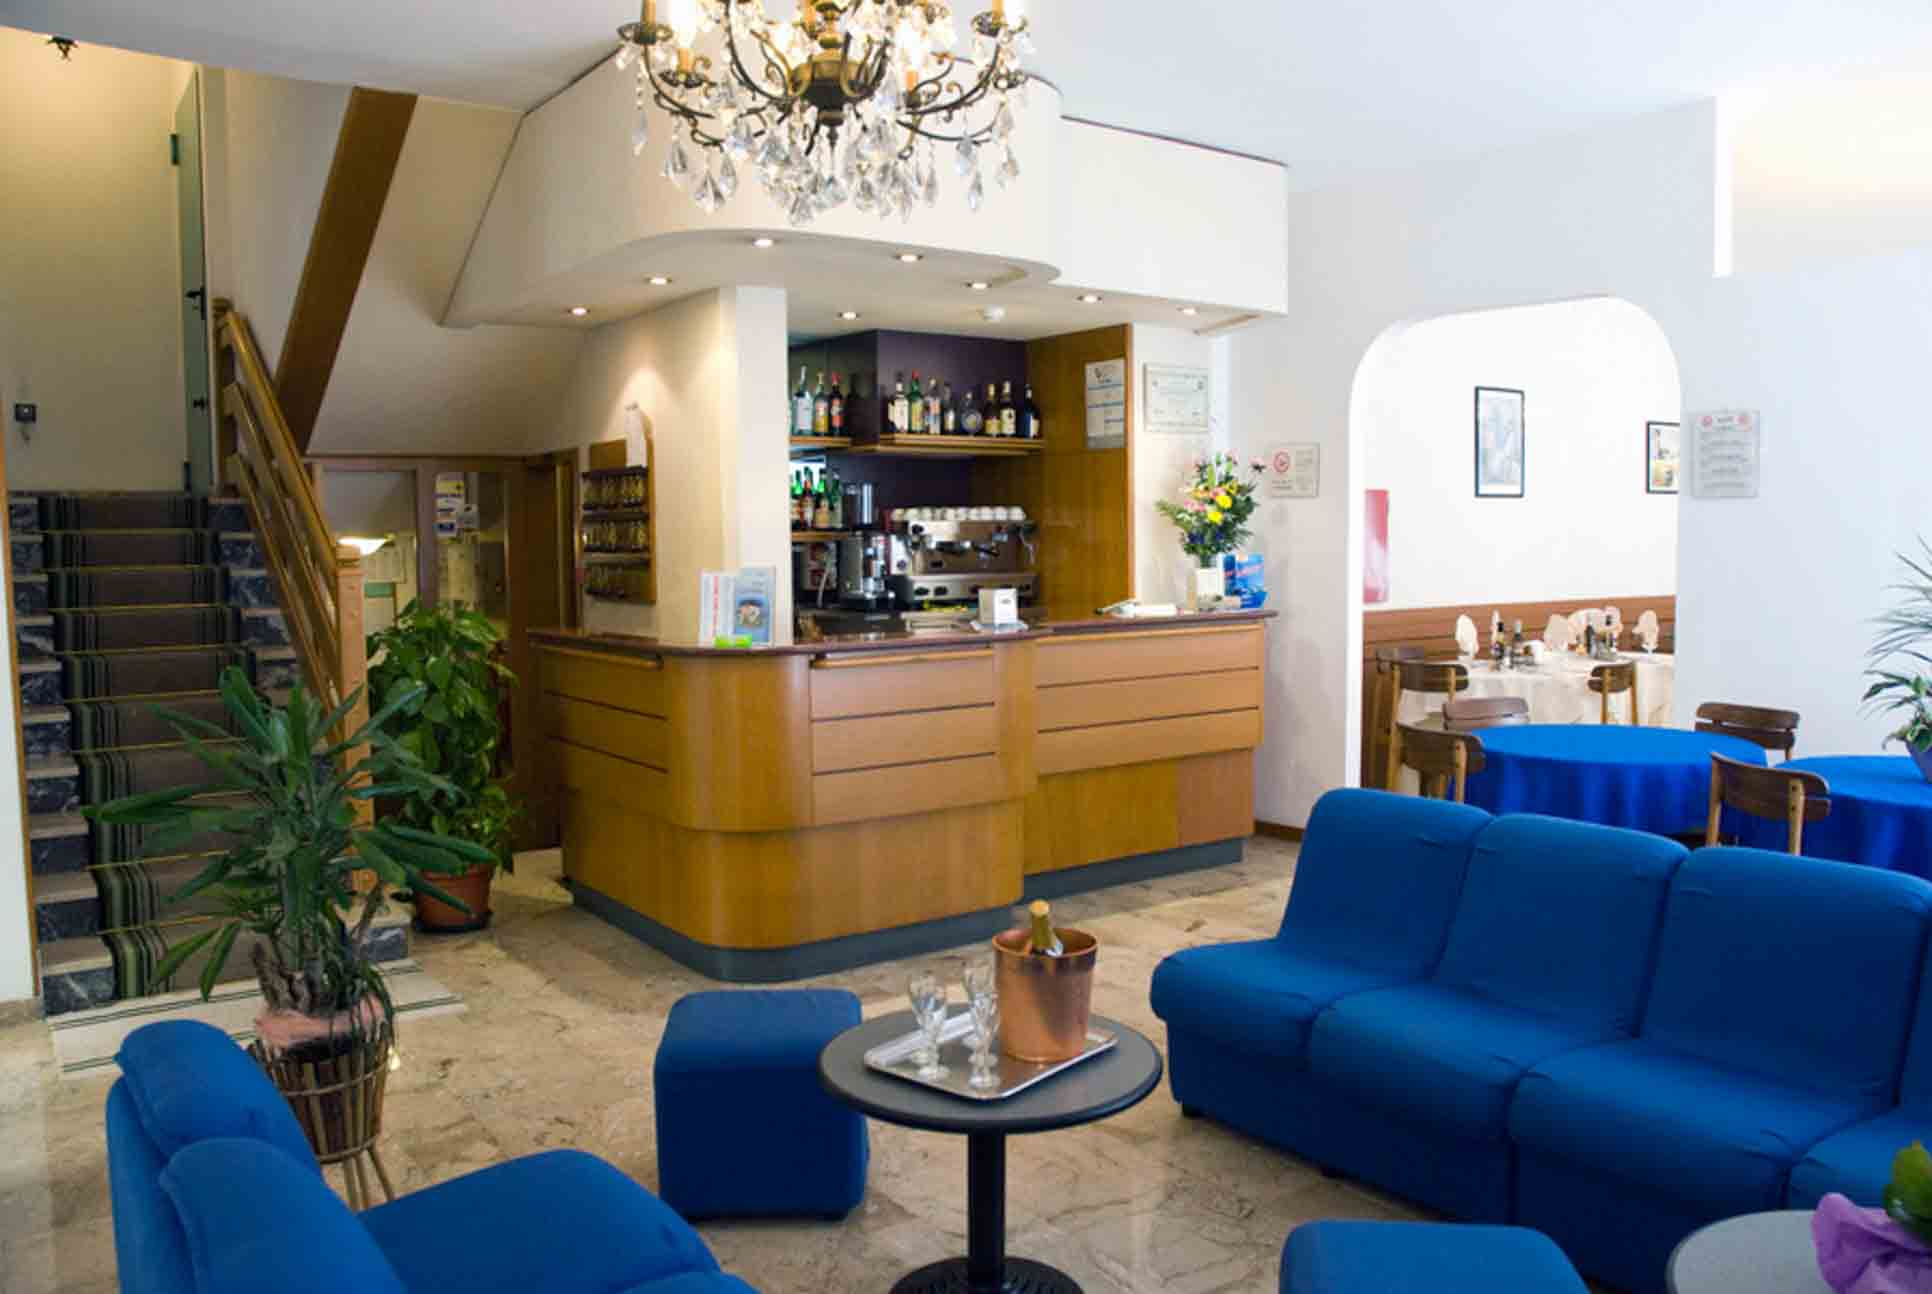 Hotel Carezza Cervia Receptions e Bar